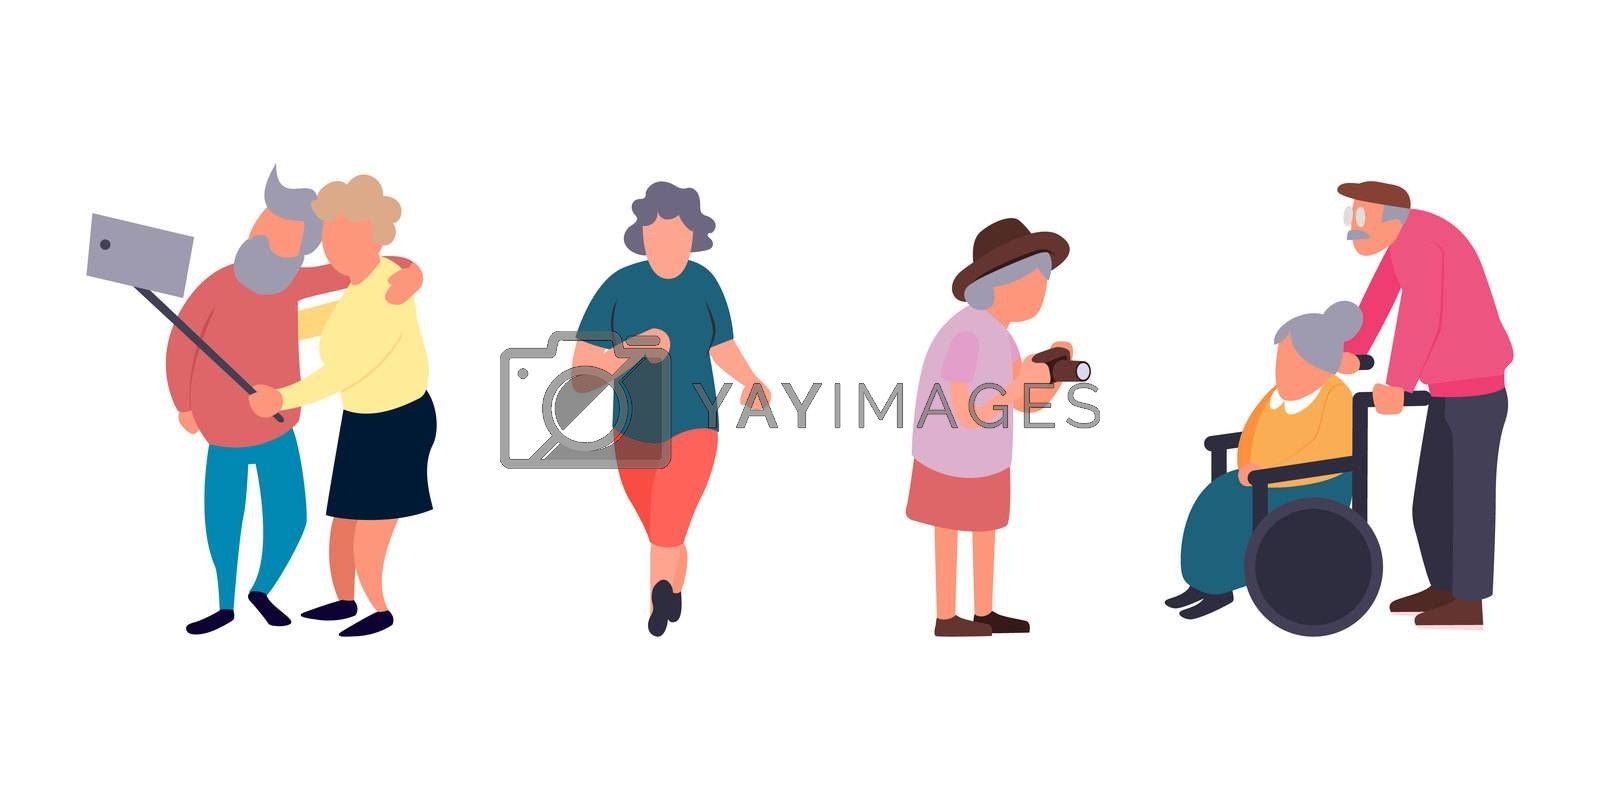 Recreation and leisure senior activities concept. Group of active old people. Elder people background. Cartoon elderly female character.